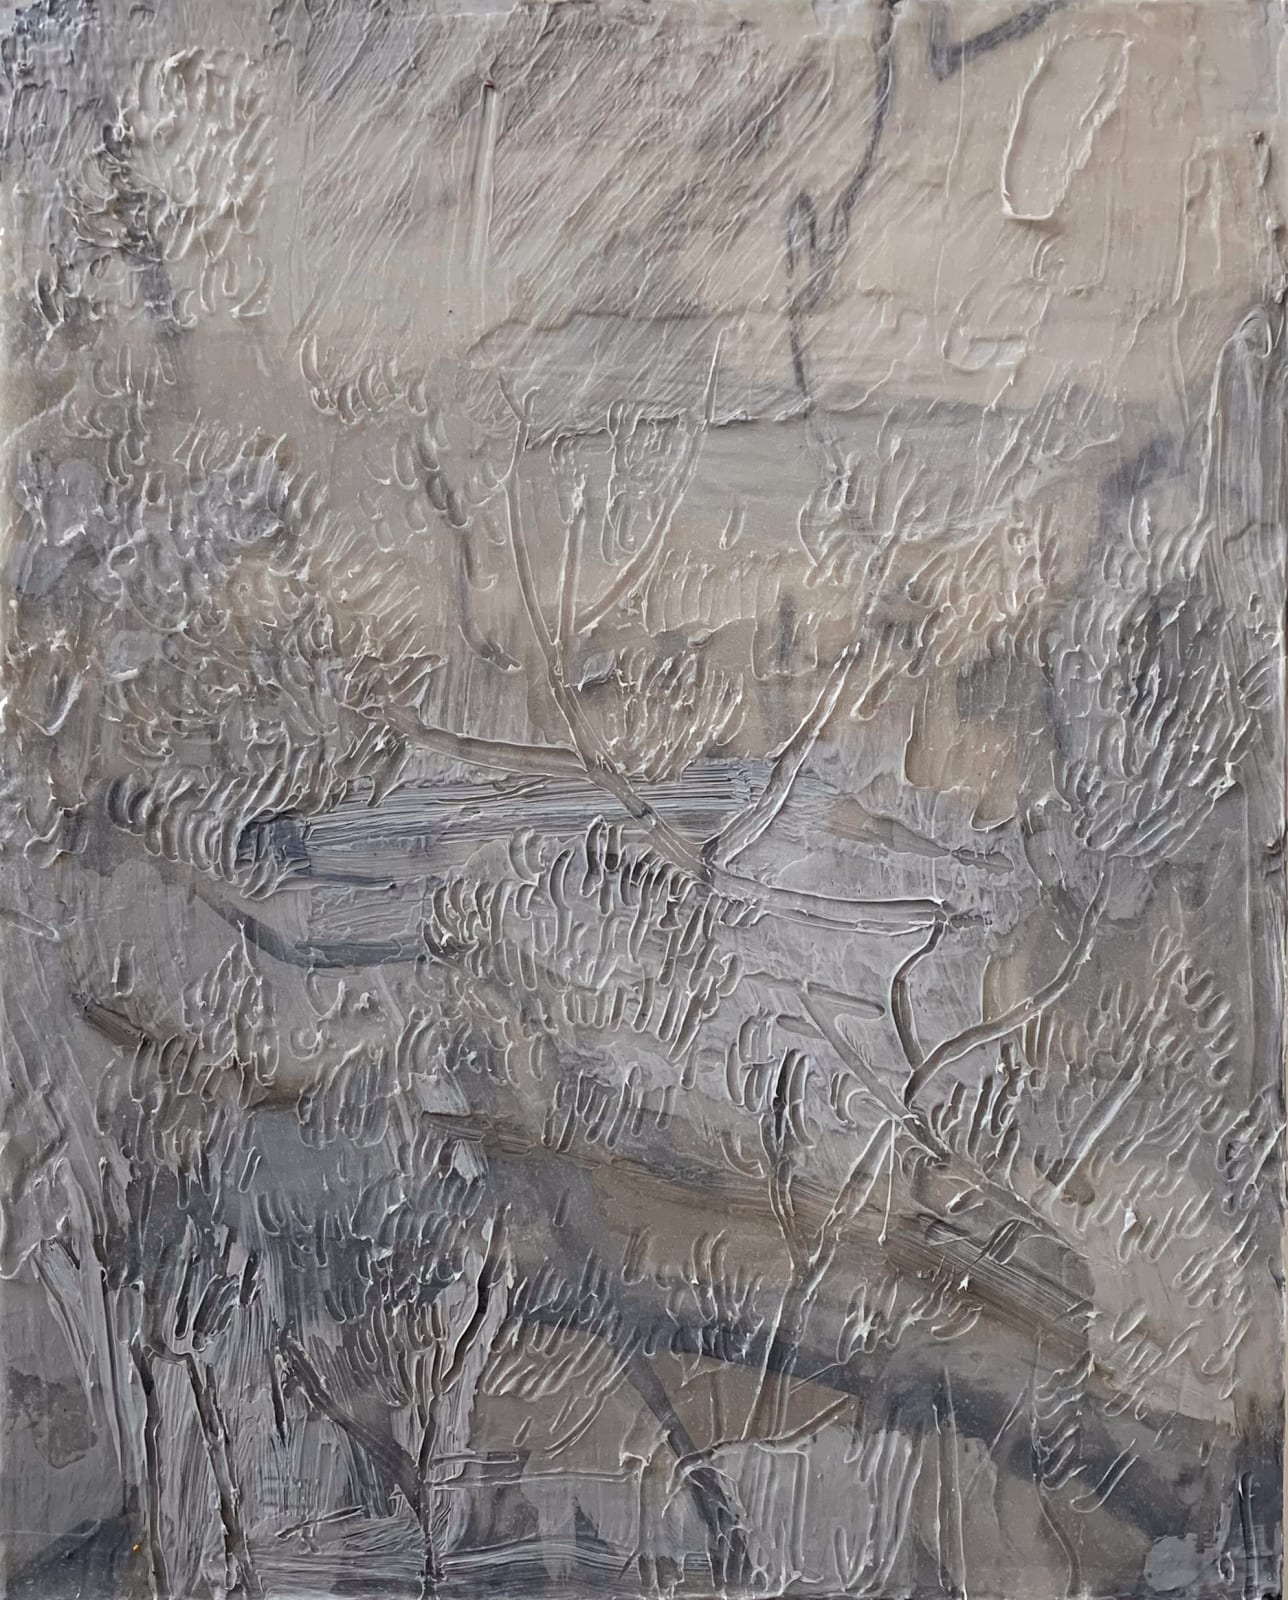 Ricardo Cabret Sin titulo, 2021 Polymers and acrylic on panel 20 x 16 in 50.8 x 40.6 cm